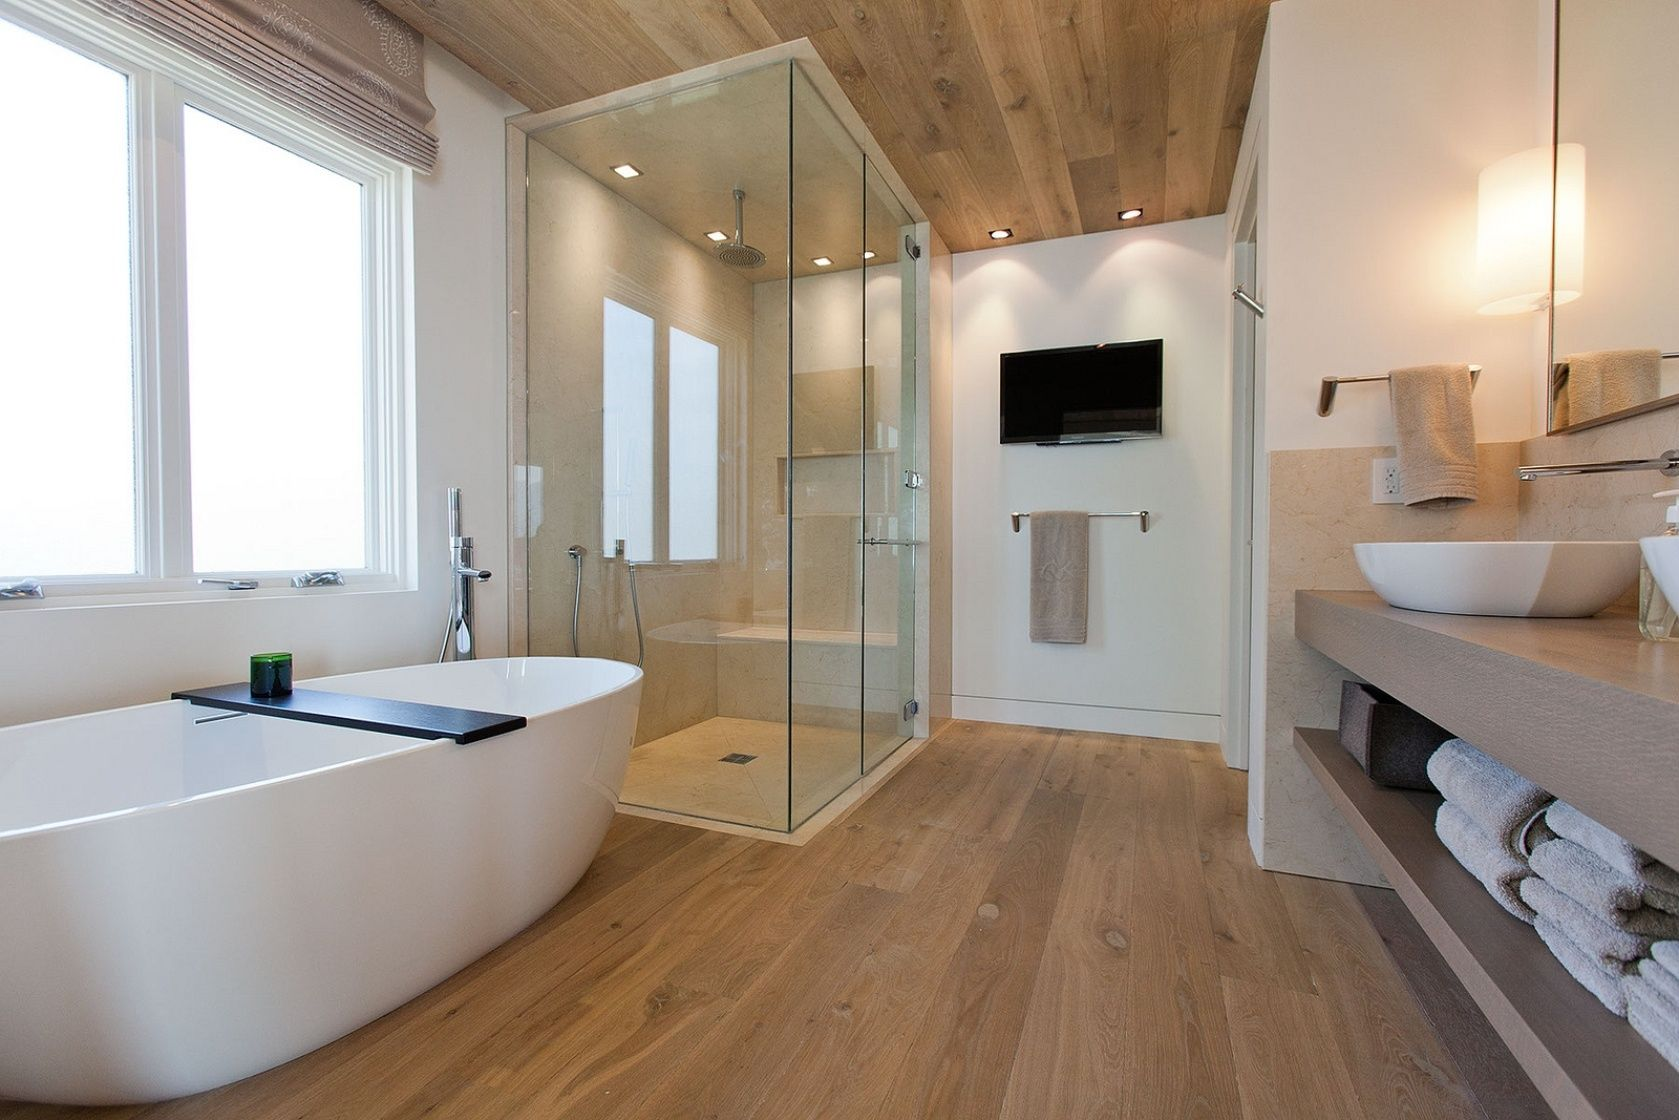 Beautiful Stunning Vacation Home Design: Two Storey Lake House: Sensational Glass  Shower Space In The Naramata Cabin Robert Bailey Interiors With White Tub  And Wooden ...